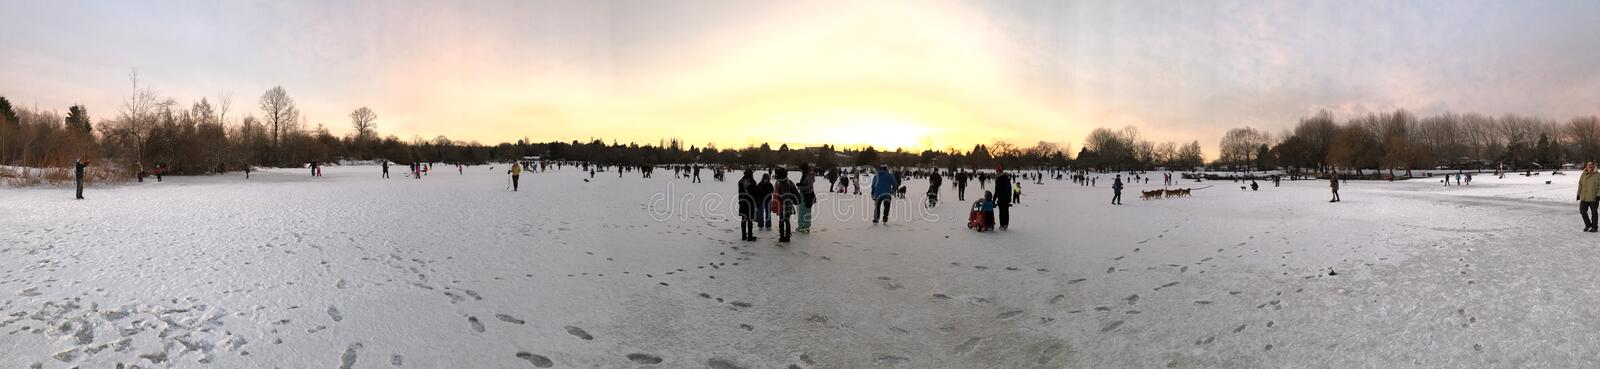 05january2017 Trout Lake Skating Party :-) Panorama #fun #lucky #snowmaggedon Free Public Domain Cc0 Image